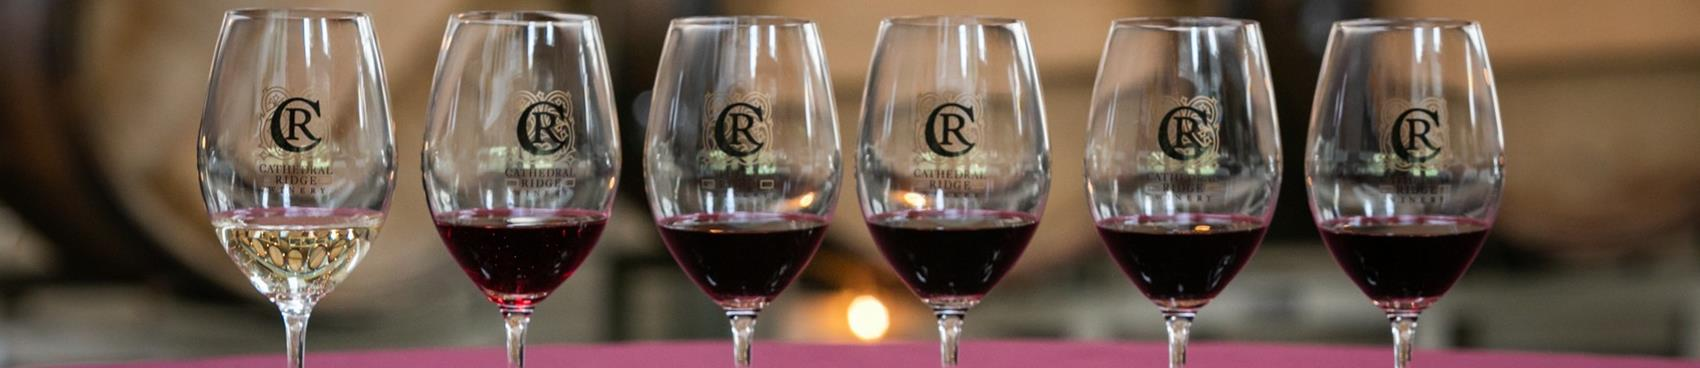 Cathedral Ridge Winery - Dundee